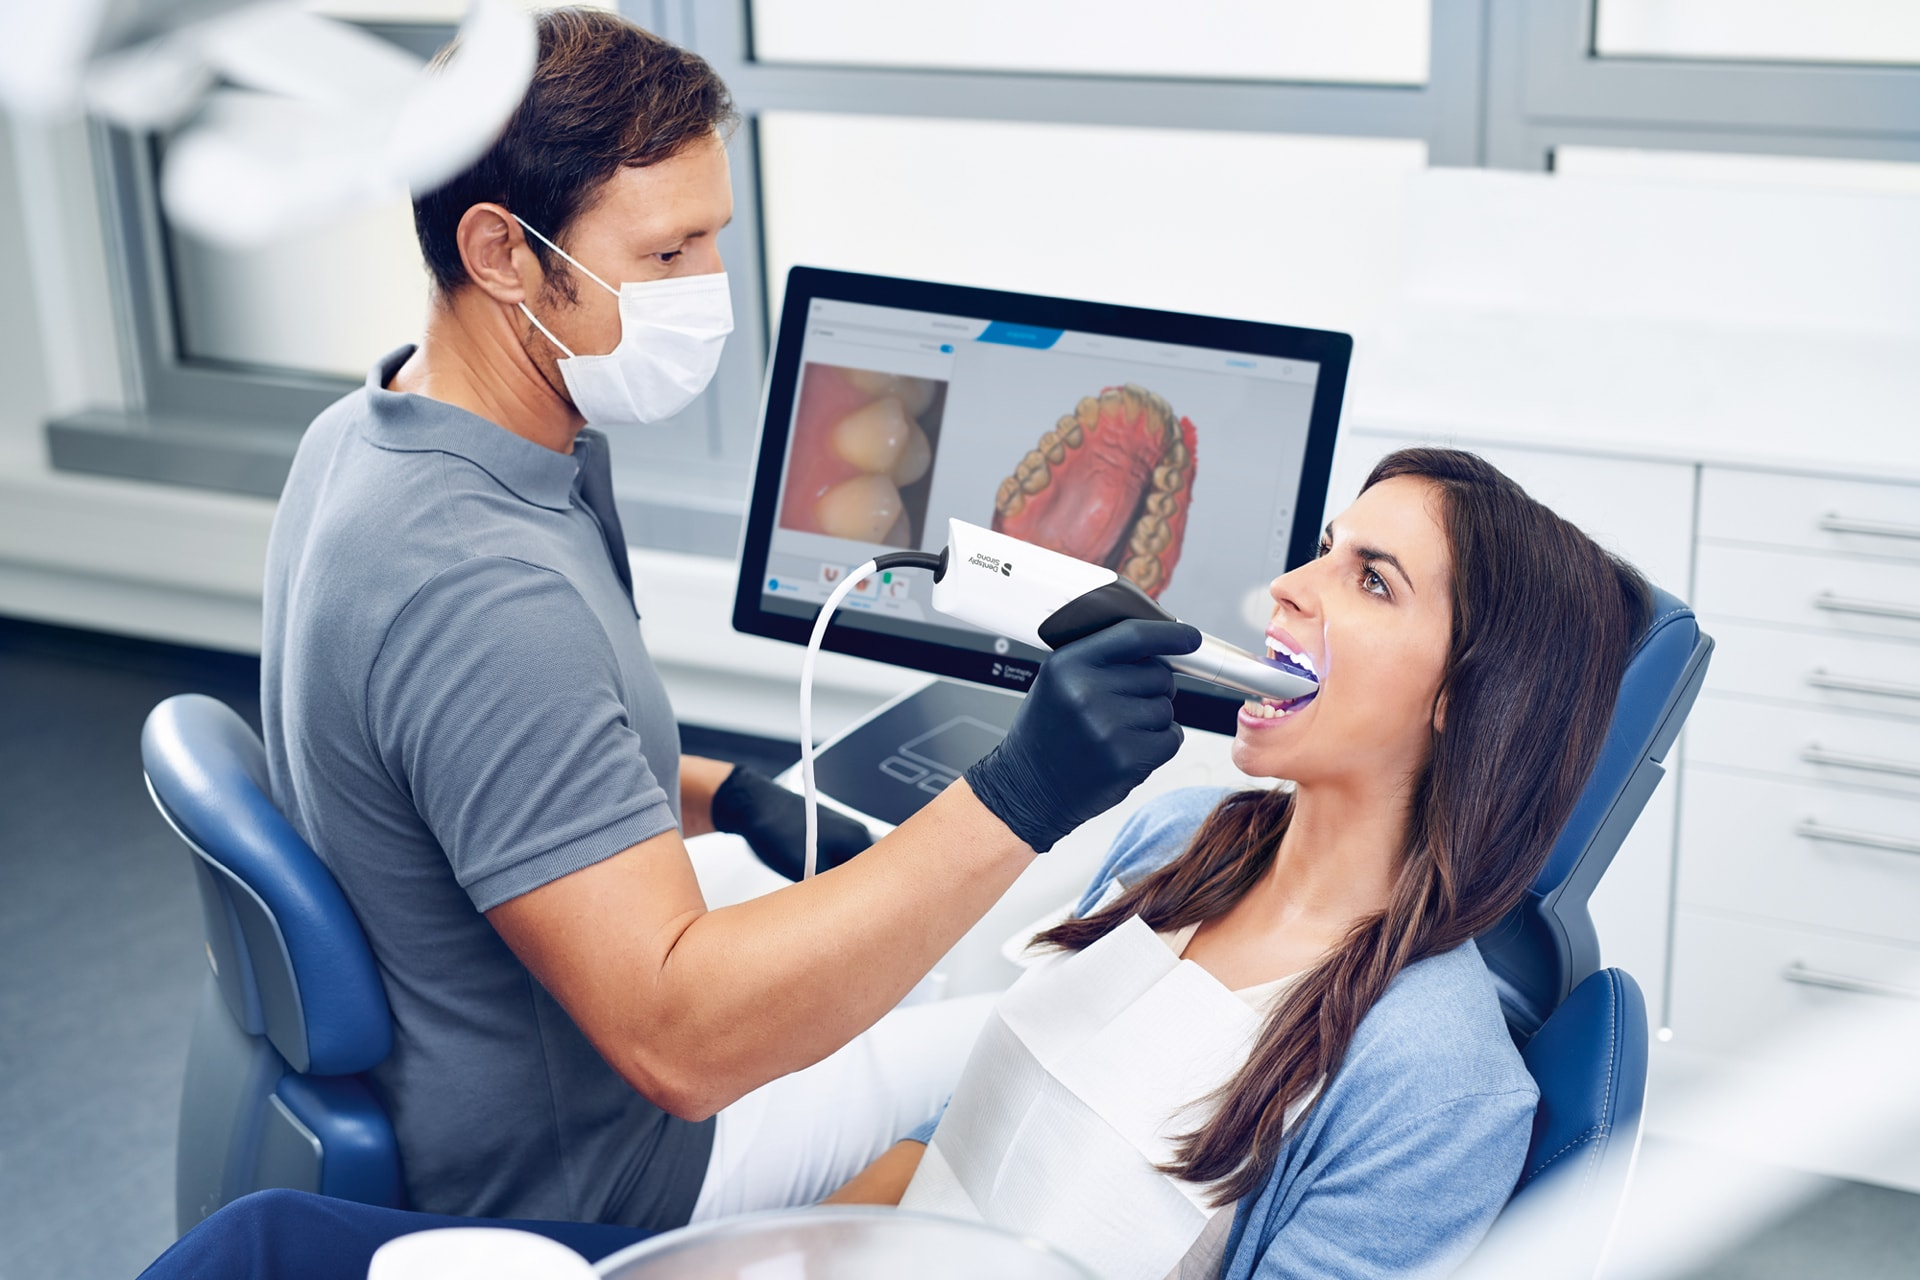 CEREC 3D technologie dentaire